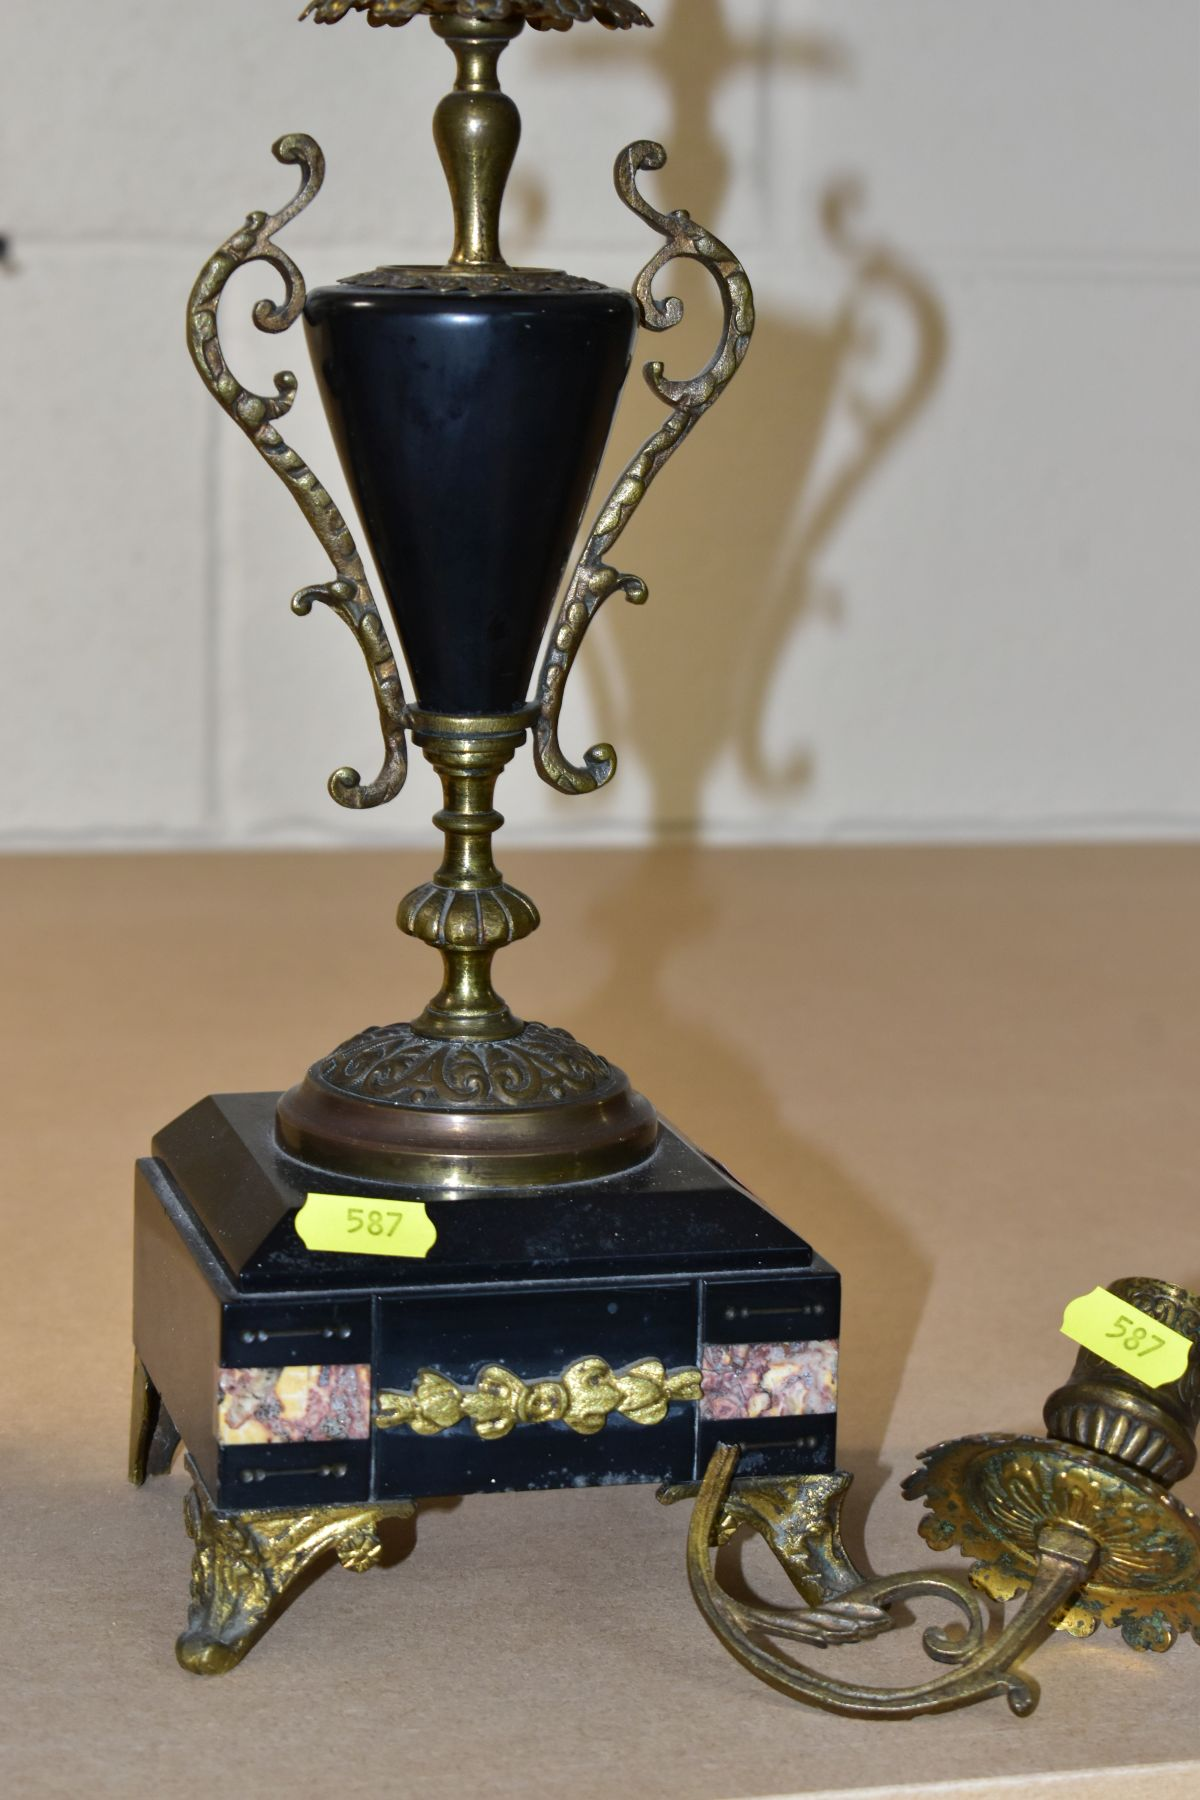 A LATE 19TH CENTURY BLACK SLATE, MARBLE AND GILT METAL CLOCK GARNITURE, the clock with urn shaped - Image 3 of 13